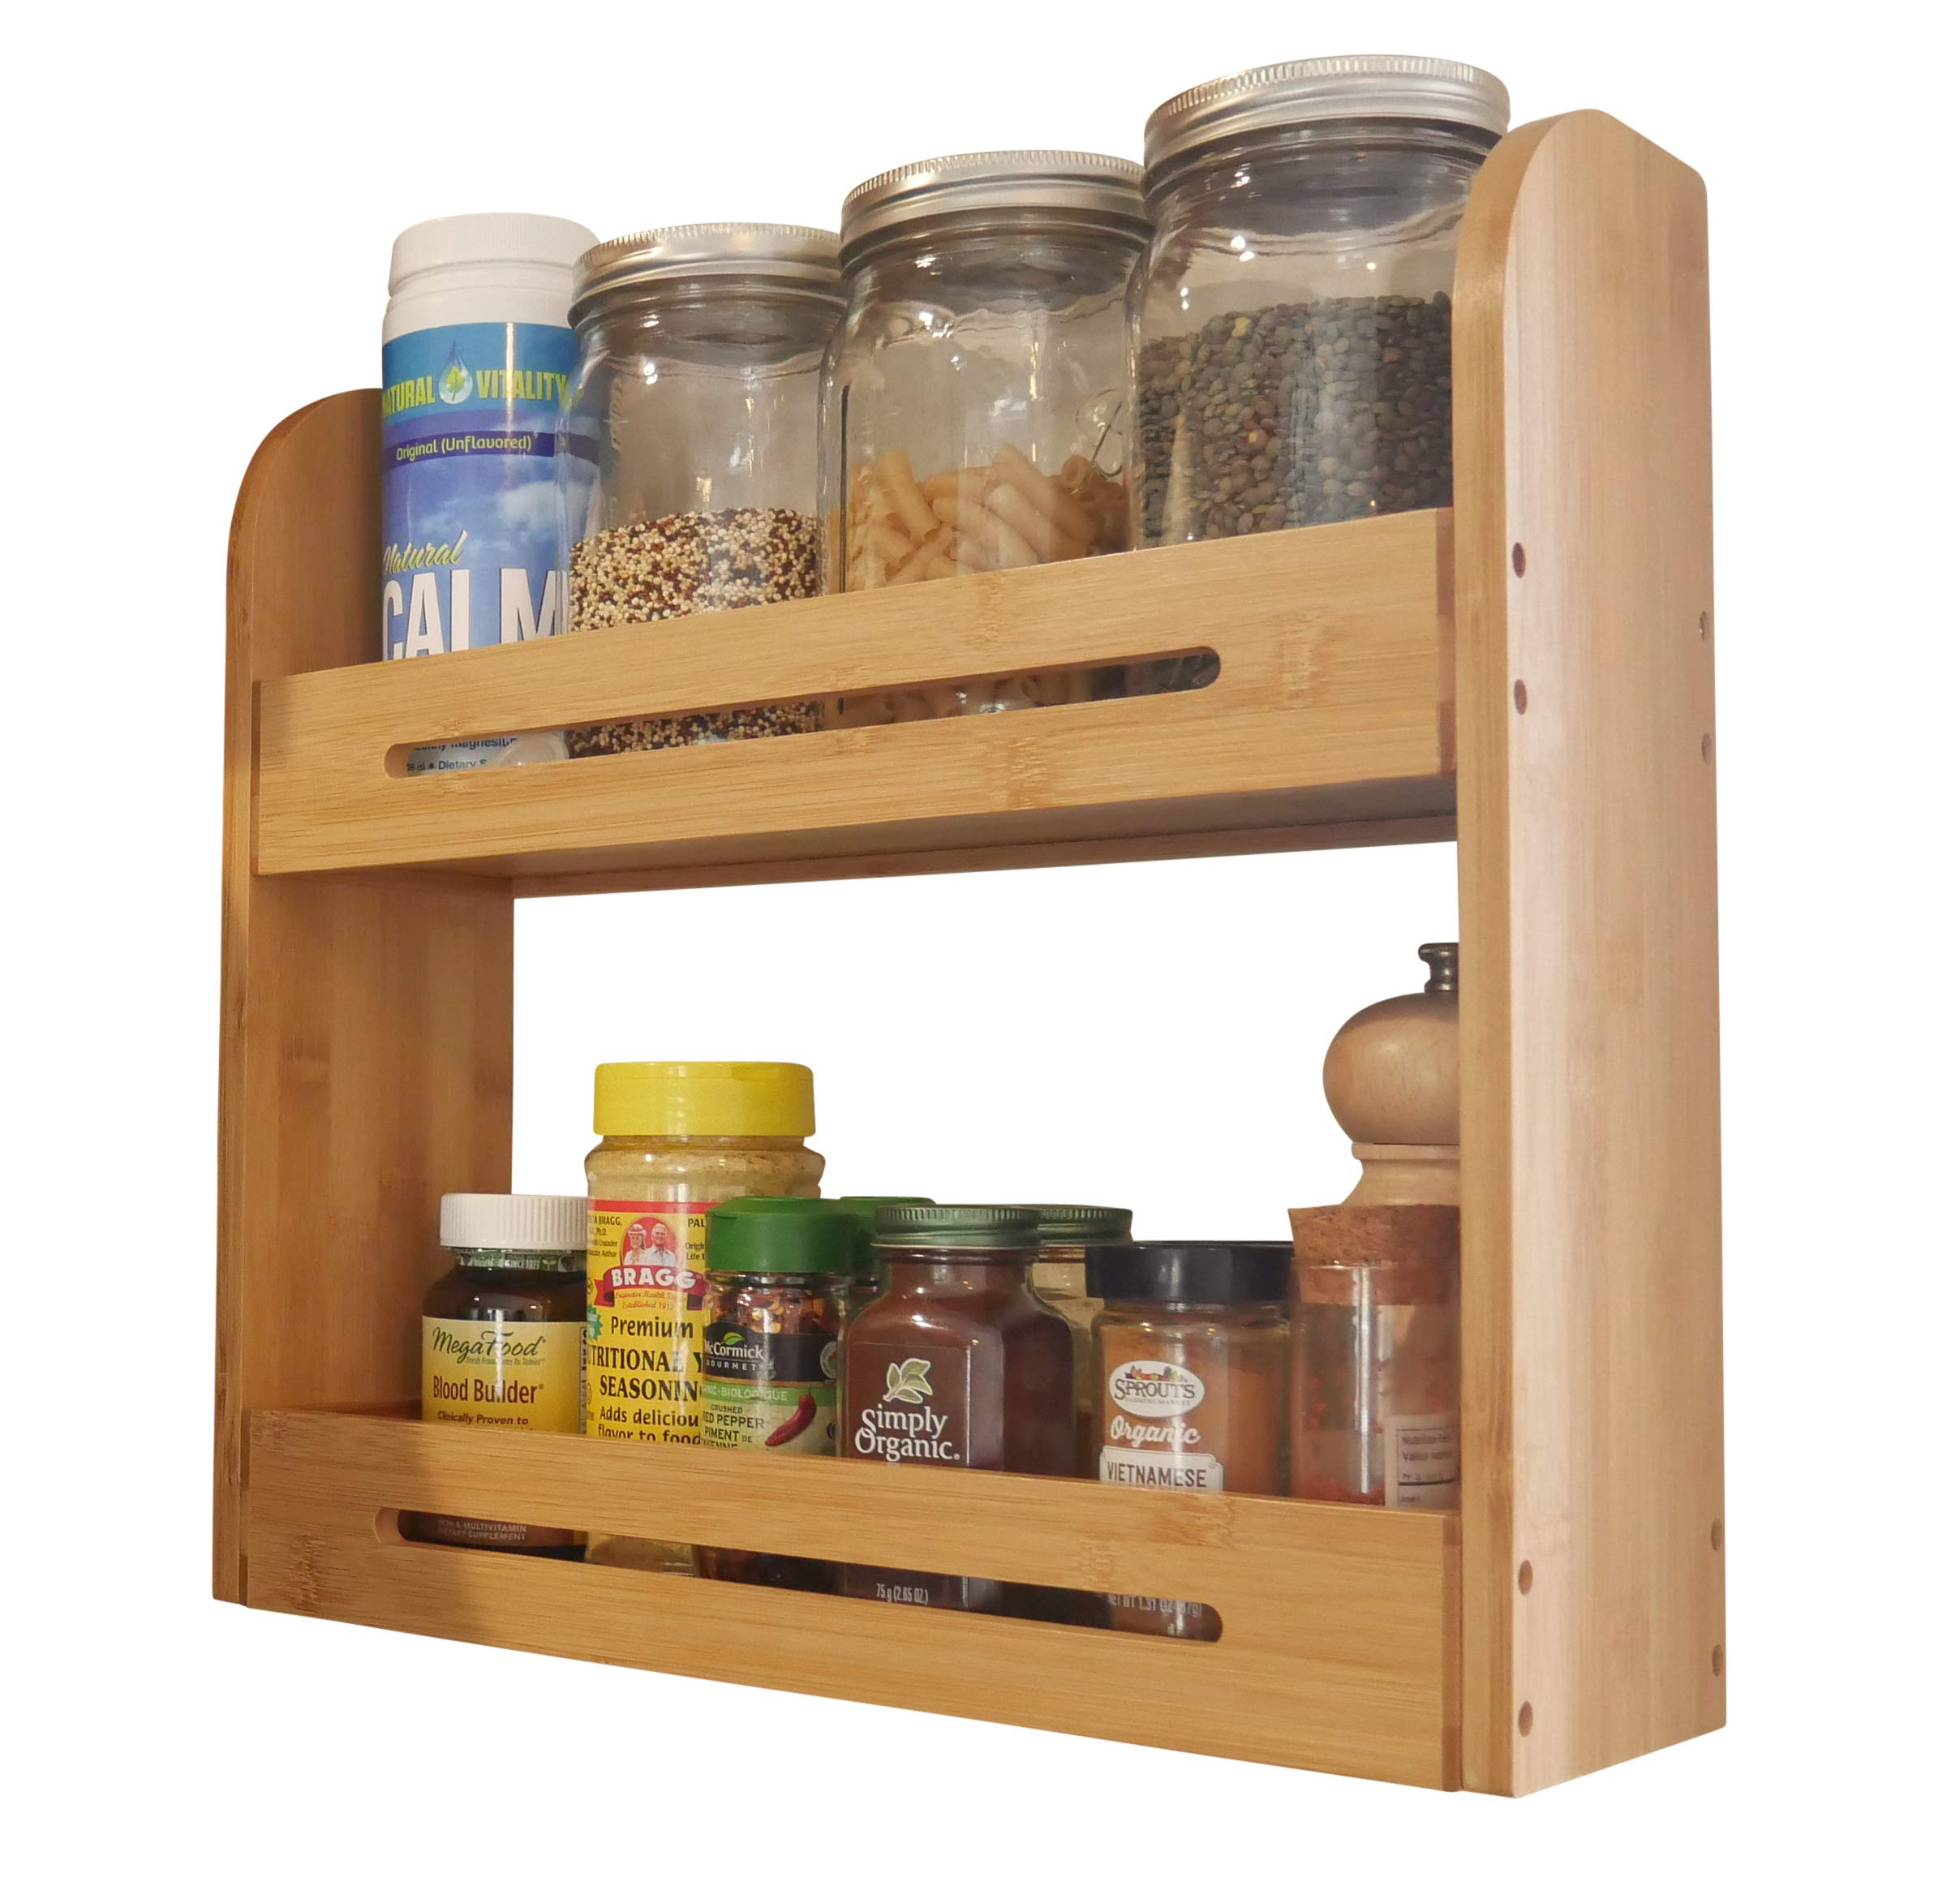 Large Bamboo Spice Rack Stand Two Tiered Wooden Shelf Organizer For Counter Top and Wall Mounted Use | 4 Inch Deep Shelves Fits All Big Sized Bottles Of Spices | Ayurvedic Herbs eBook Included